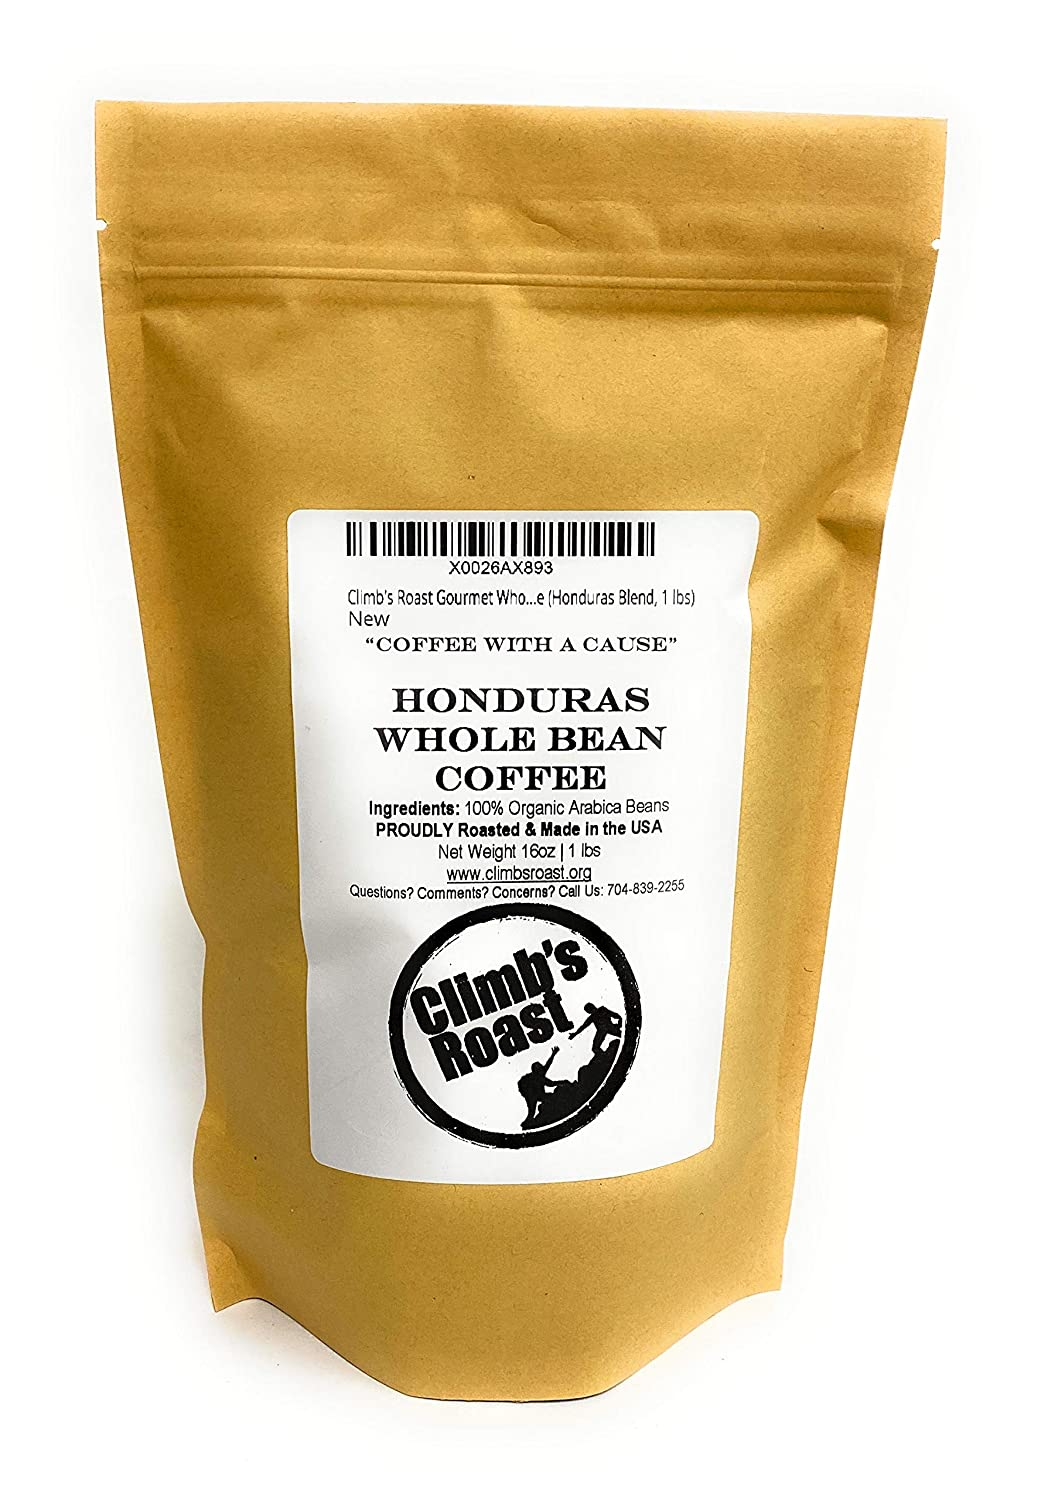 Climb's Roast Small Batch Gourmet Whole Bean Roasted Coffee